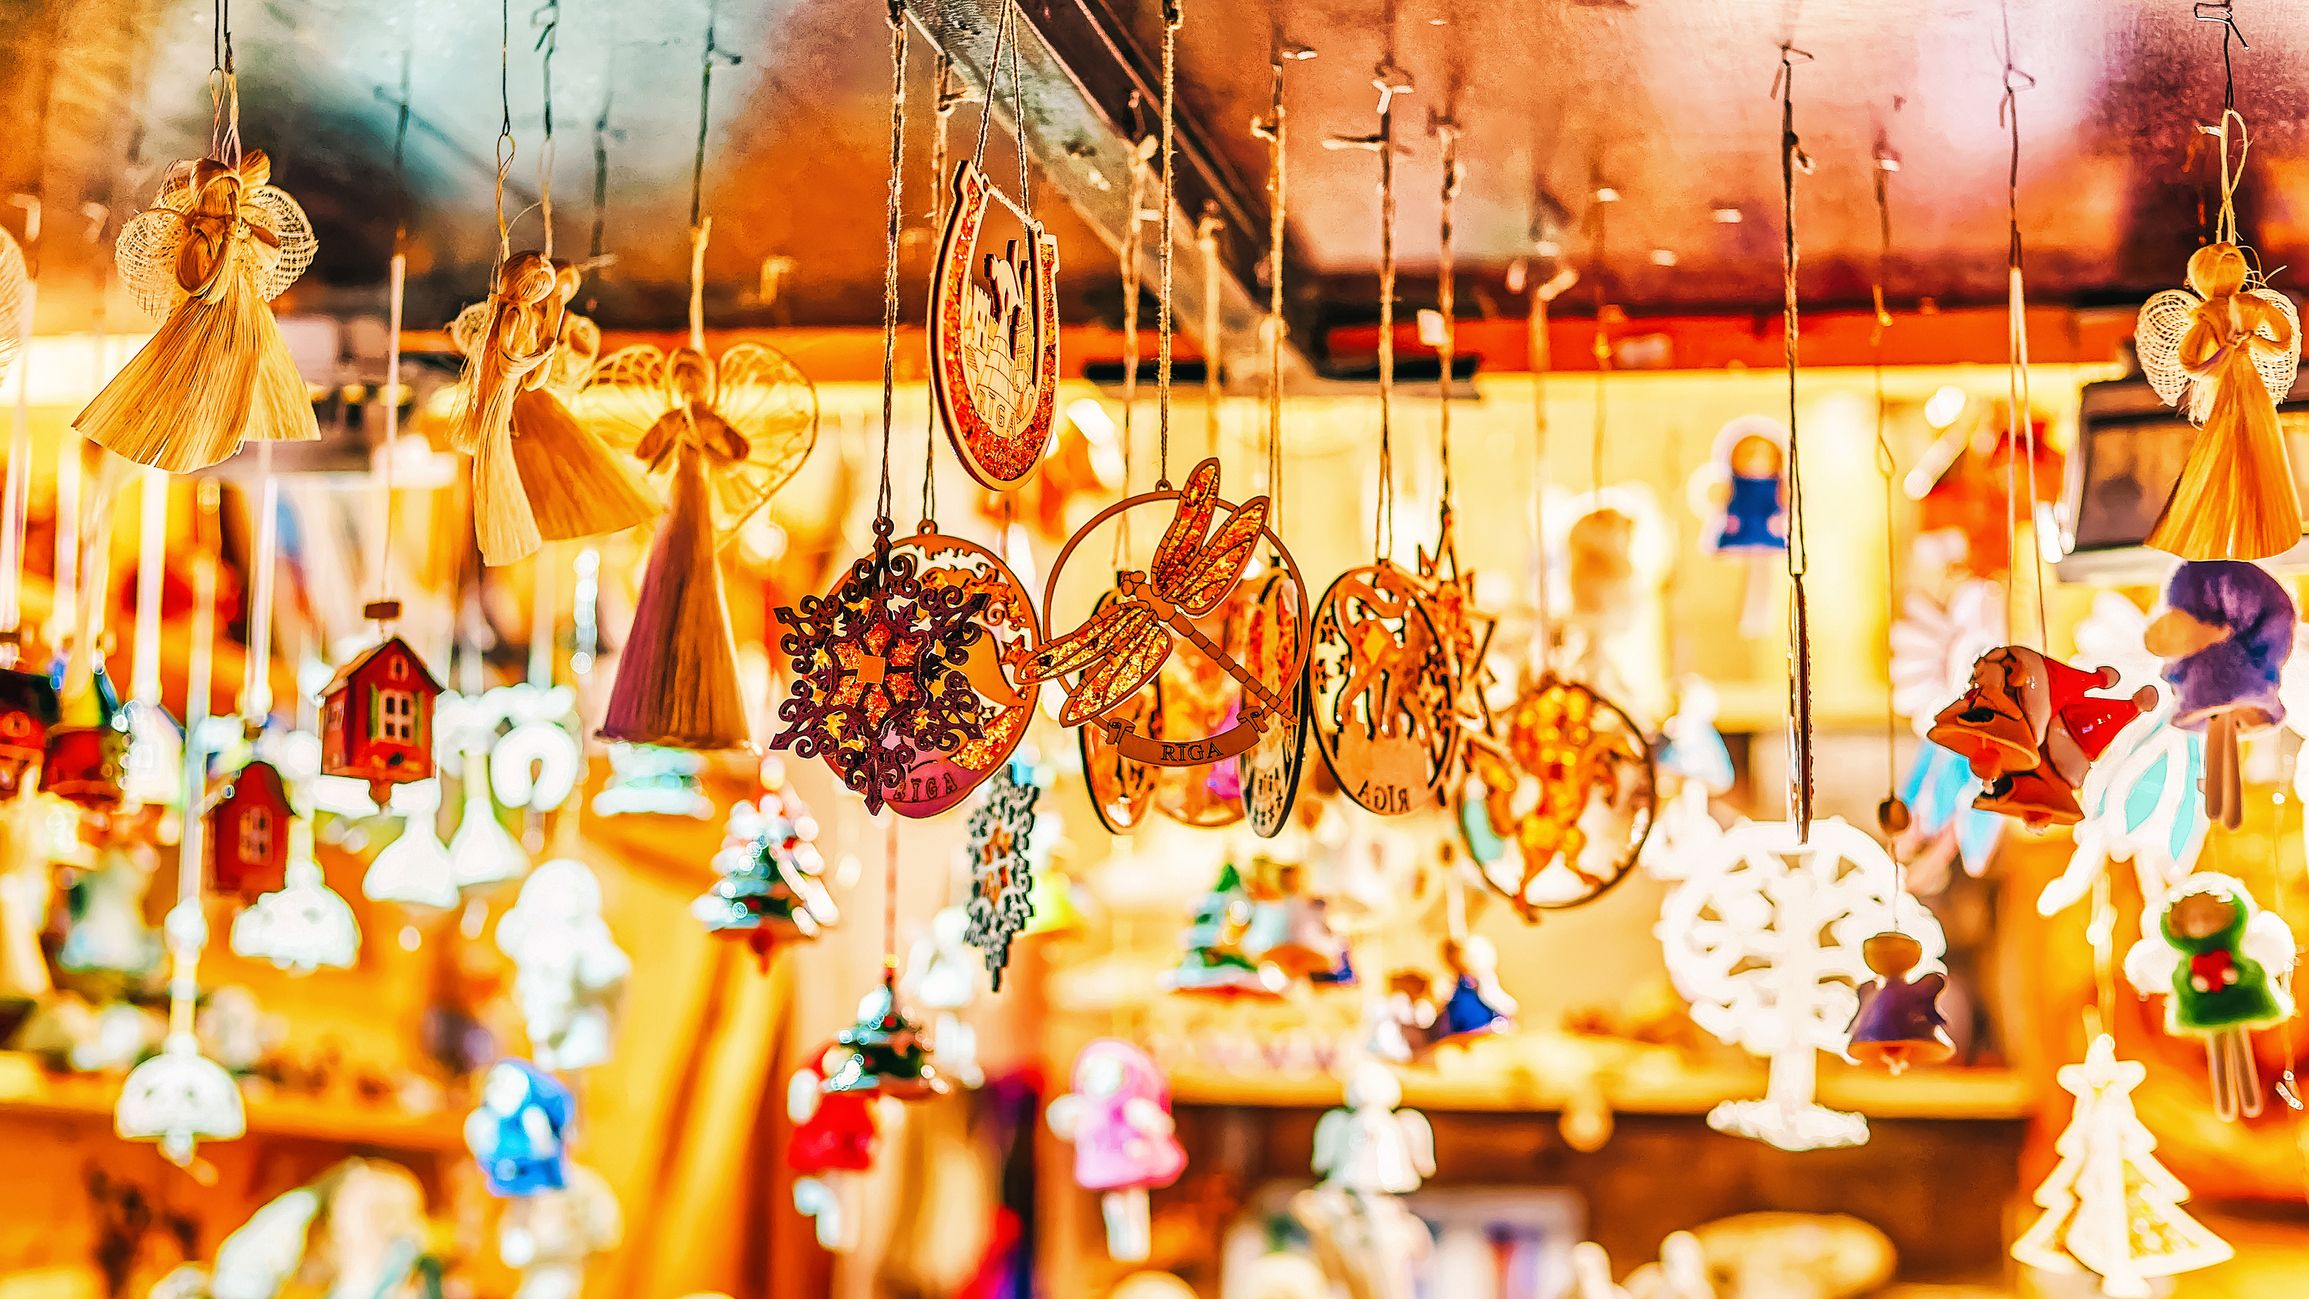 Europes best value Christmas market break revealed